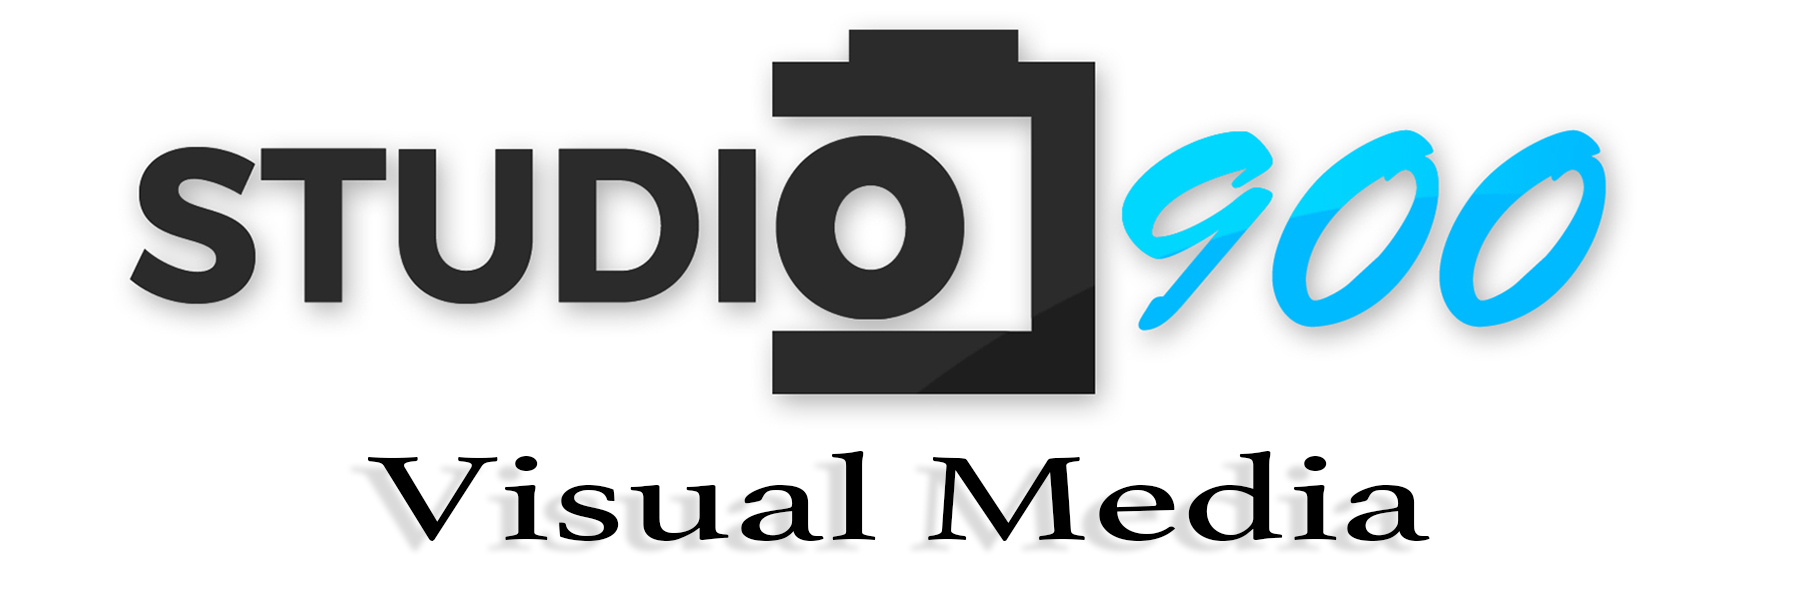 Studio 900 Visual Media